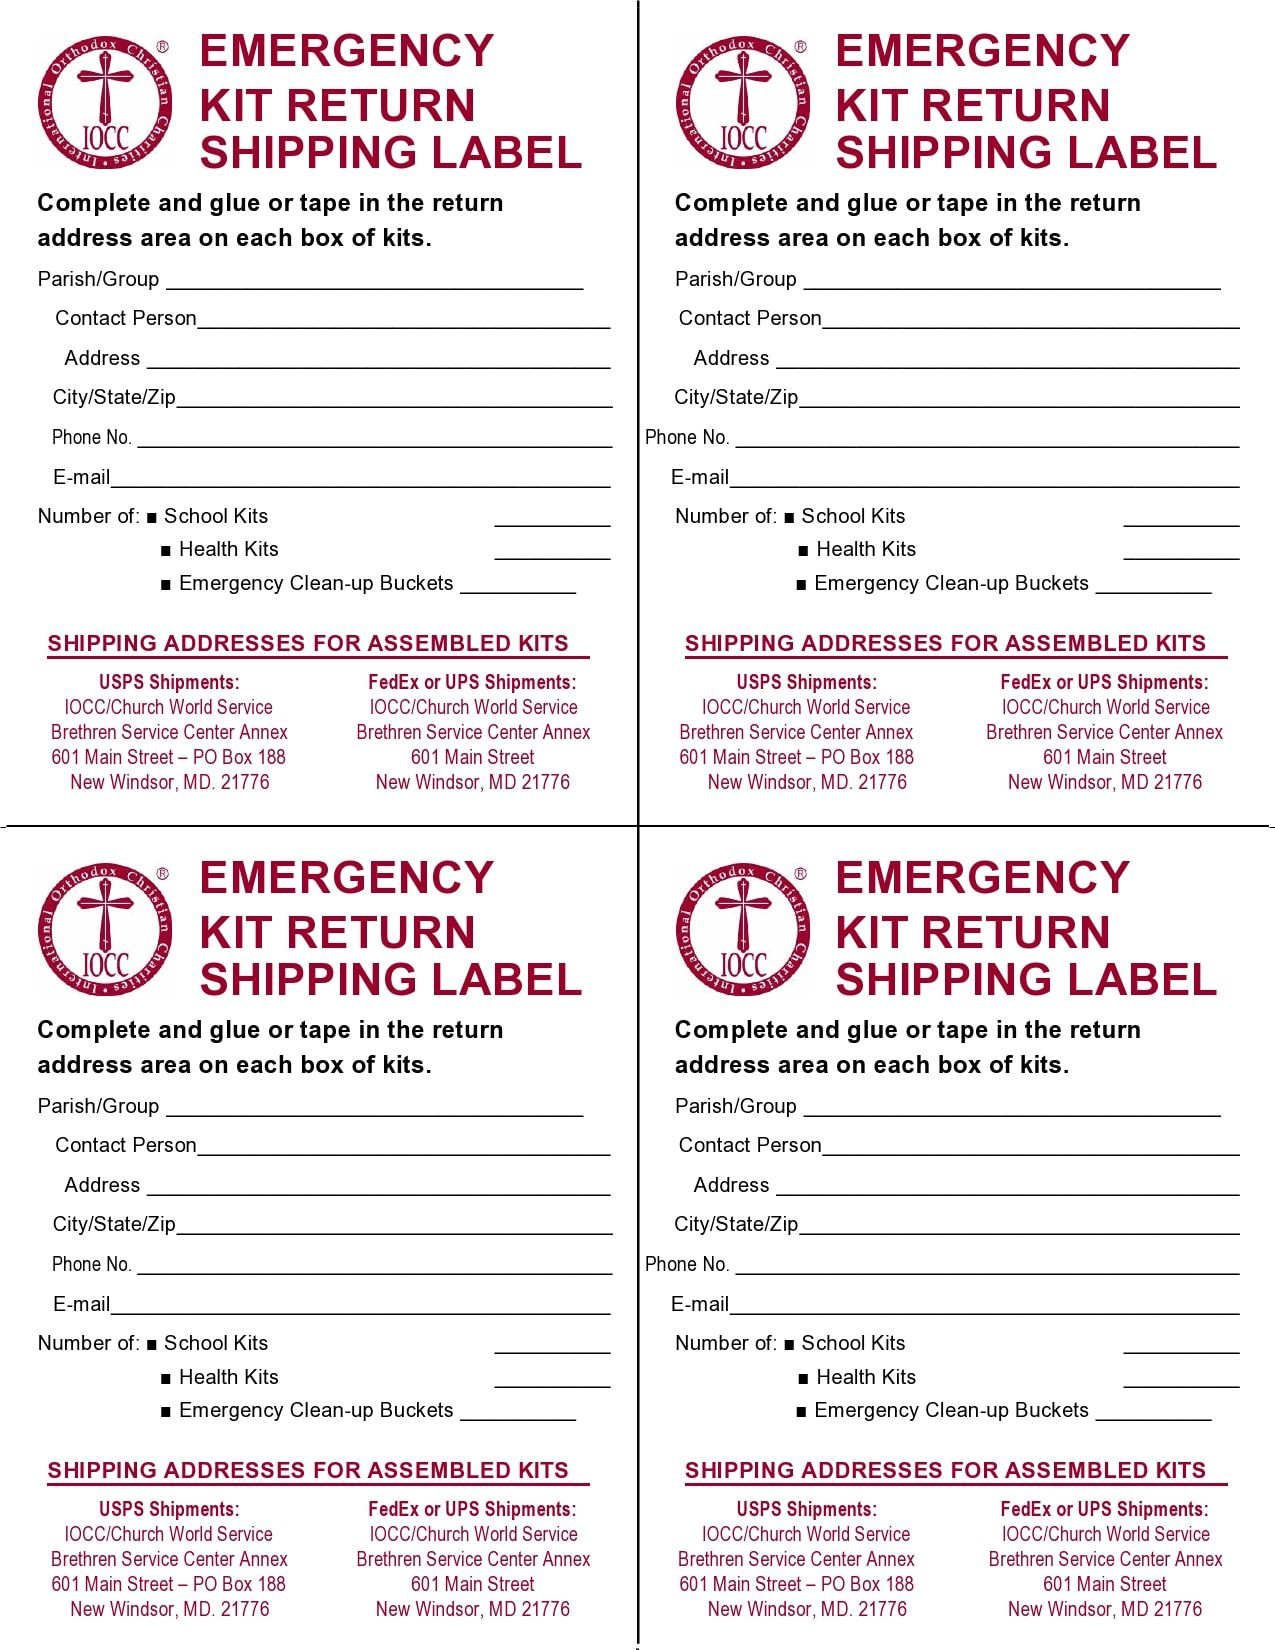 009 Impressive Shipping Label Template Free Word Picture Full